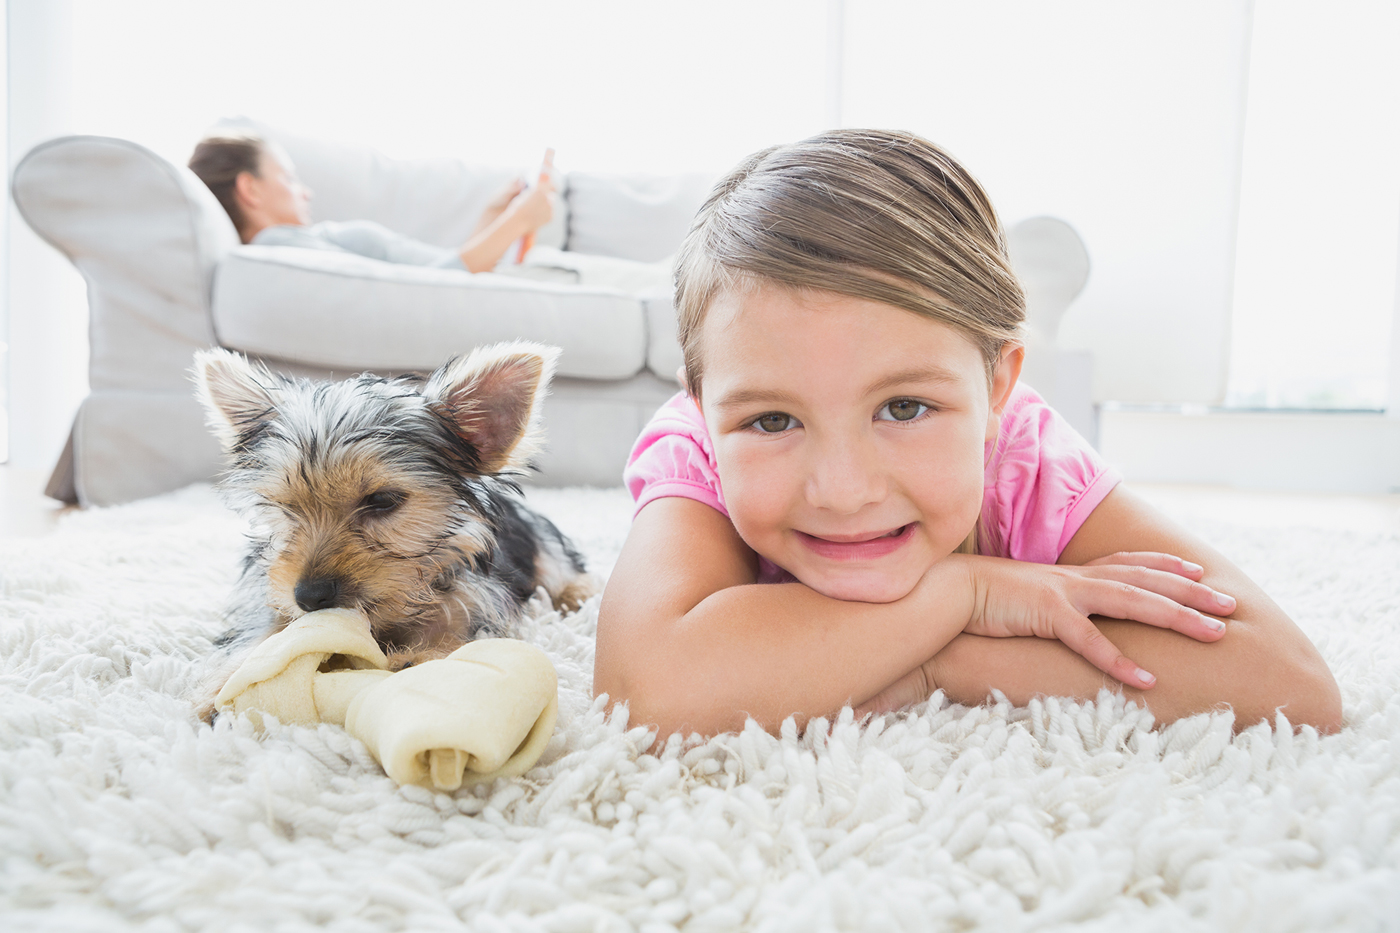 Yong child and pet dog laying on a carpet